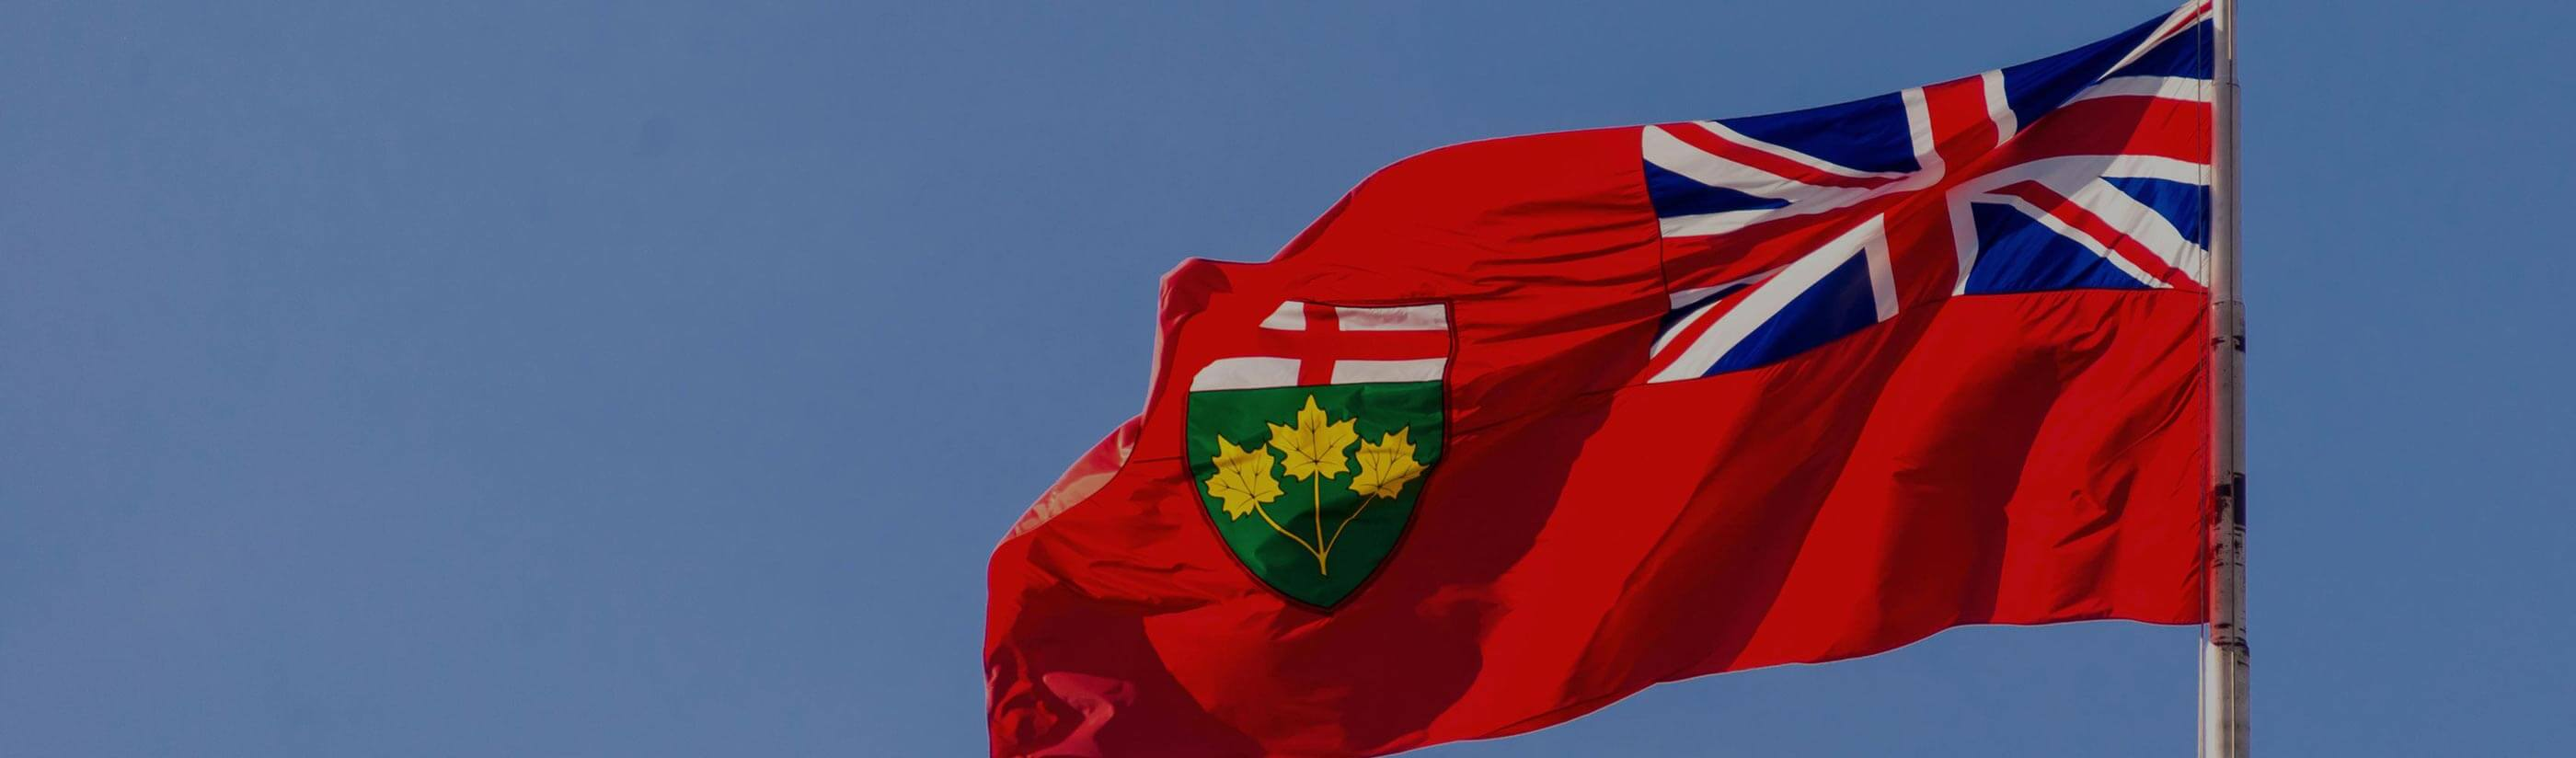 Ontario provincial flag and blue sky